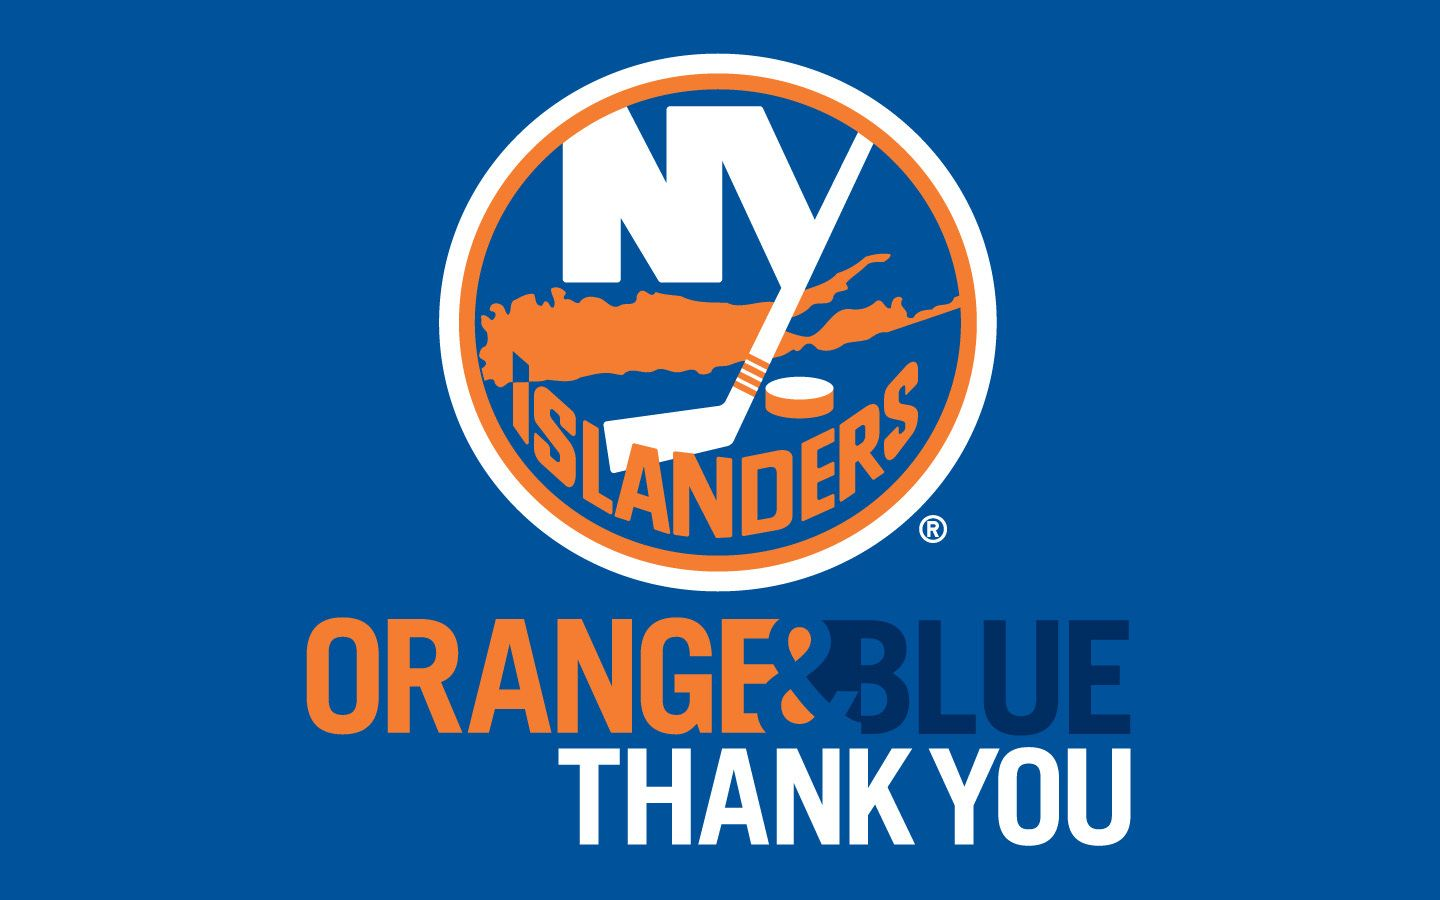 New york islanders logo clipart image free stock New York Islanders Wallpapers - Wallpaper Cave image free stock